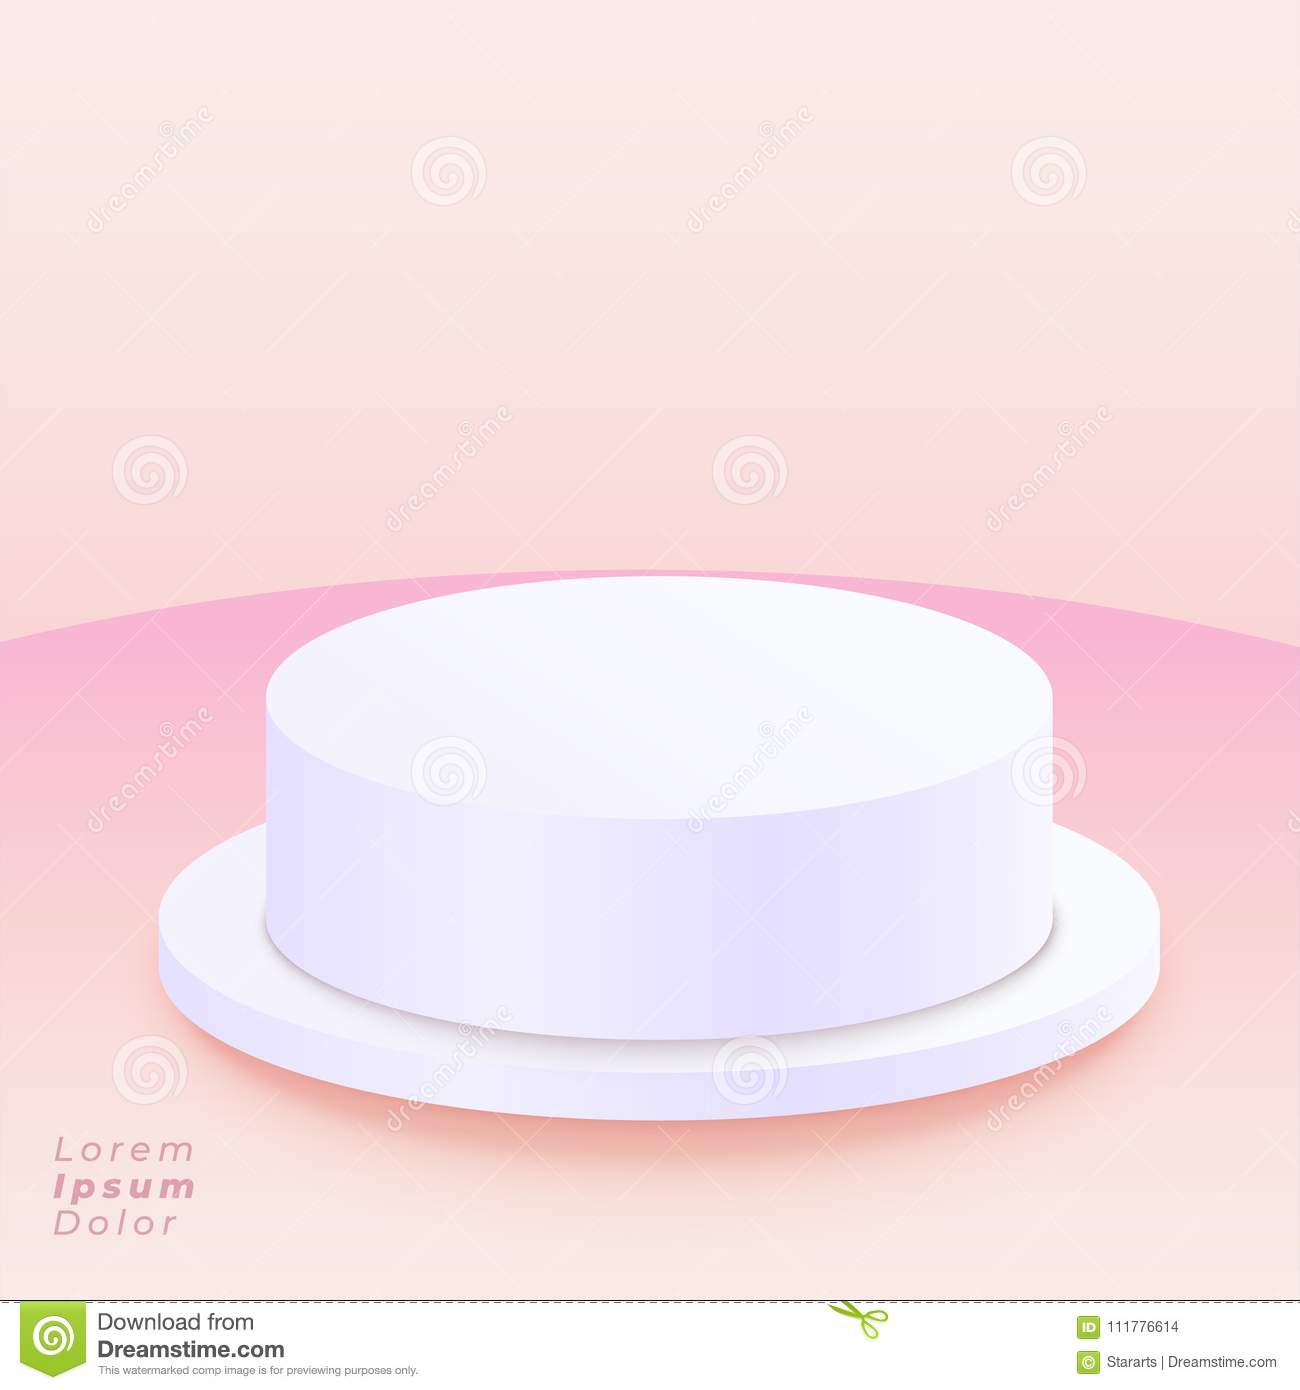 Round podium on soft pink background